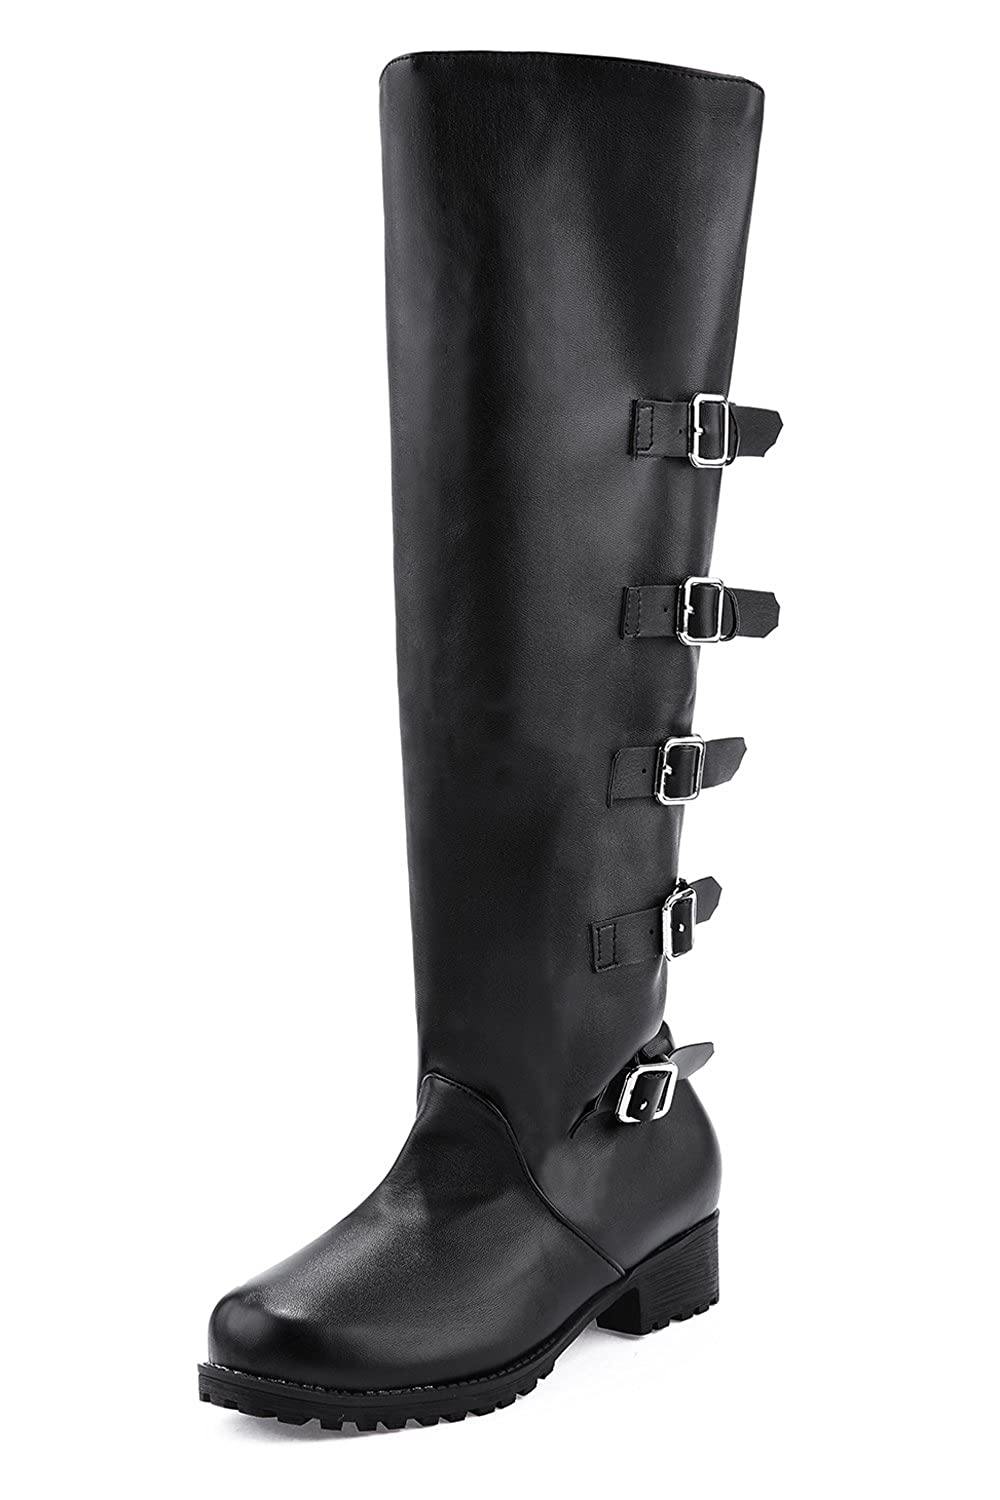 Women's Buckle Straps Black or Brown Faux Leather Riding Boots